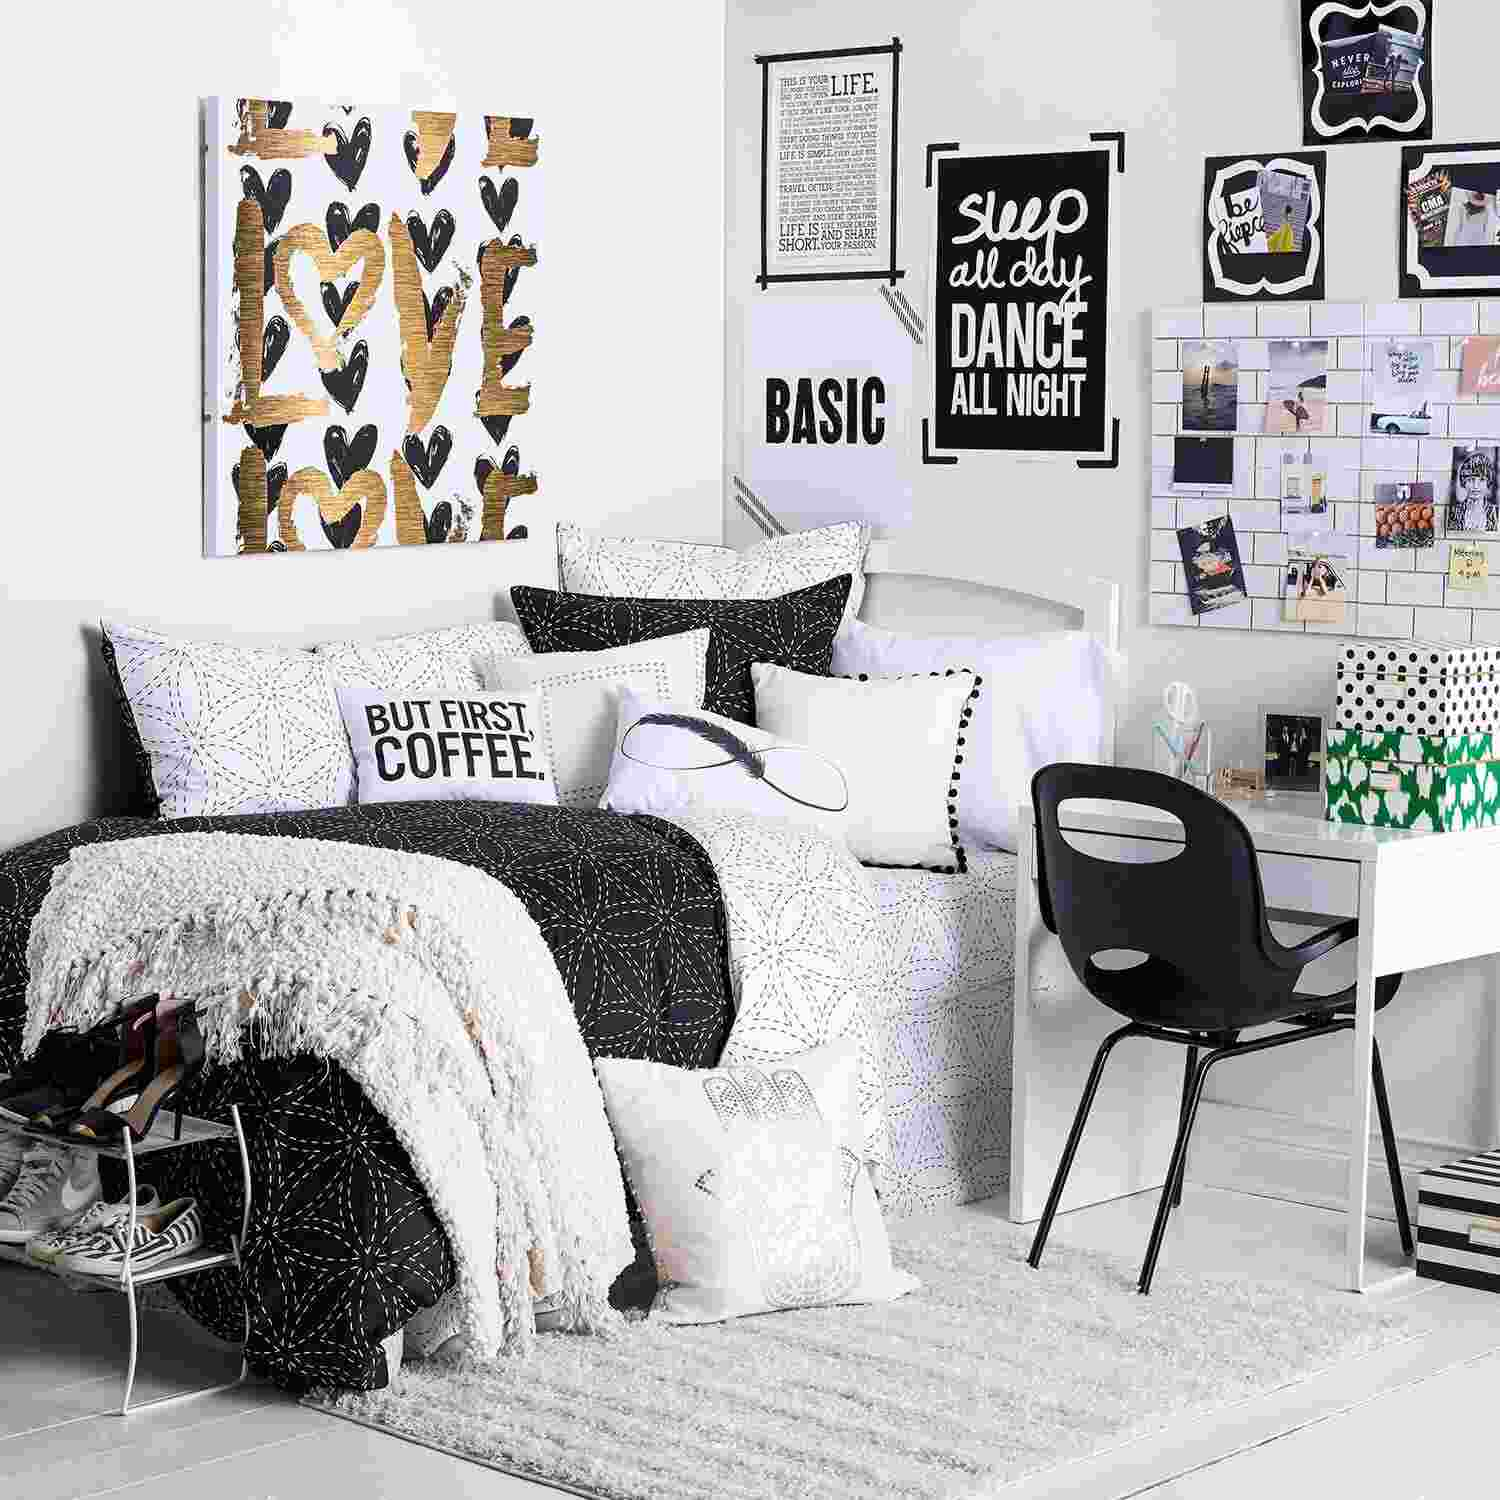 Tumblr Zimmer 50 Wunderschöne Schlafzimmer Deko Ideen Decor Object Your Daily Dose Of Best Home Decorating Ideas Interior Design Inspiration